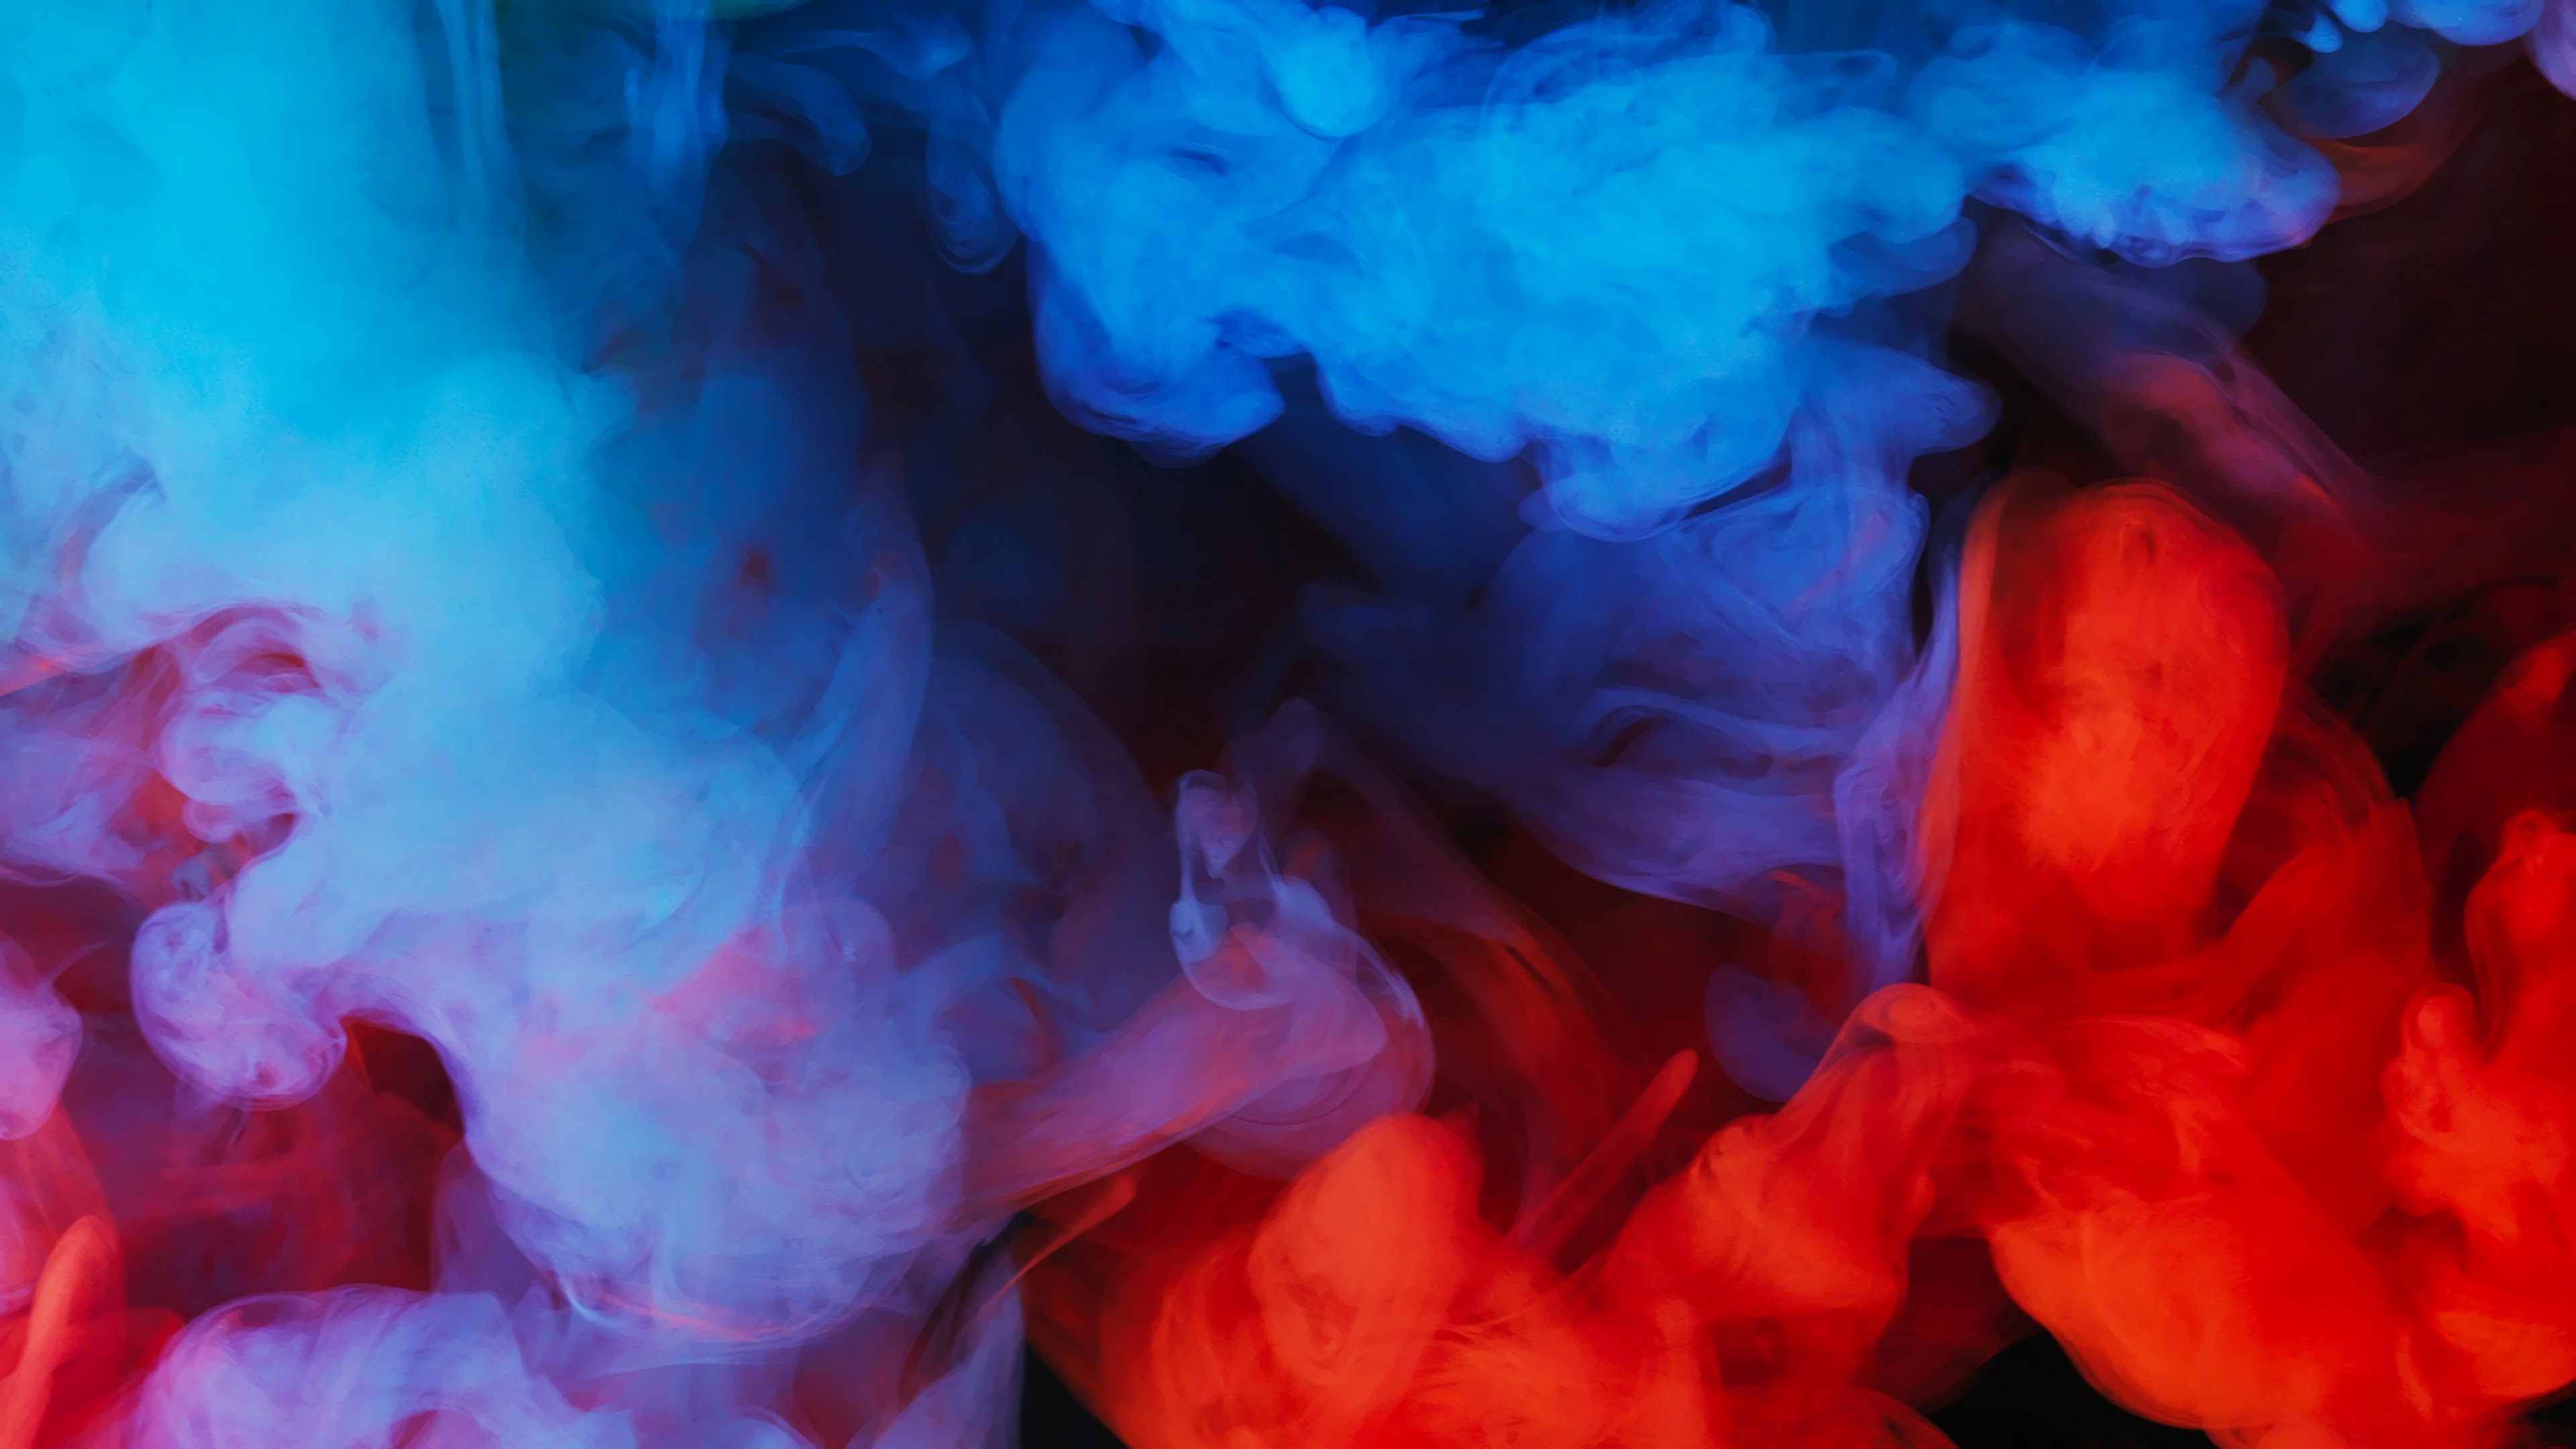 Blue Red Smoke Abstract 4K Wallpaper #53